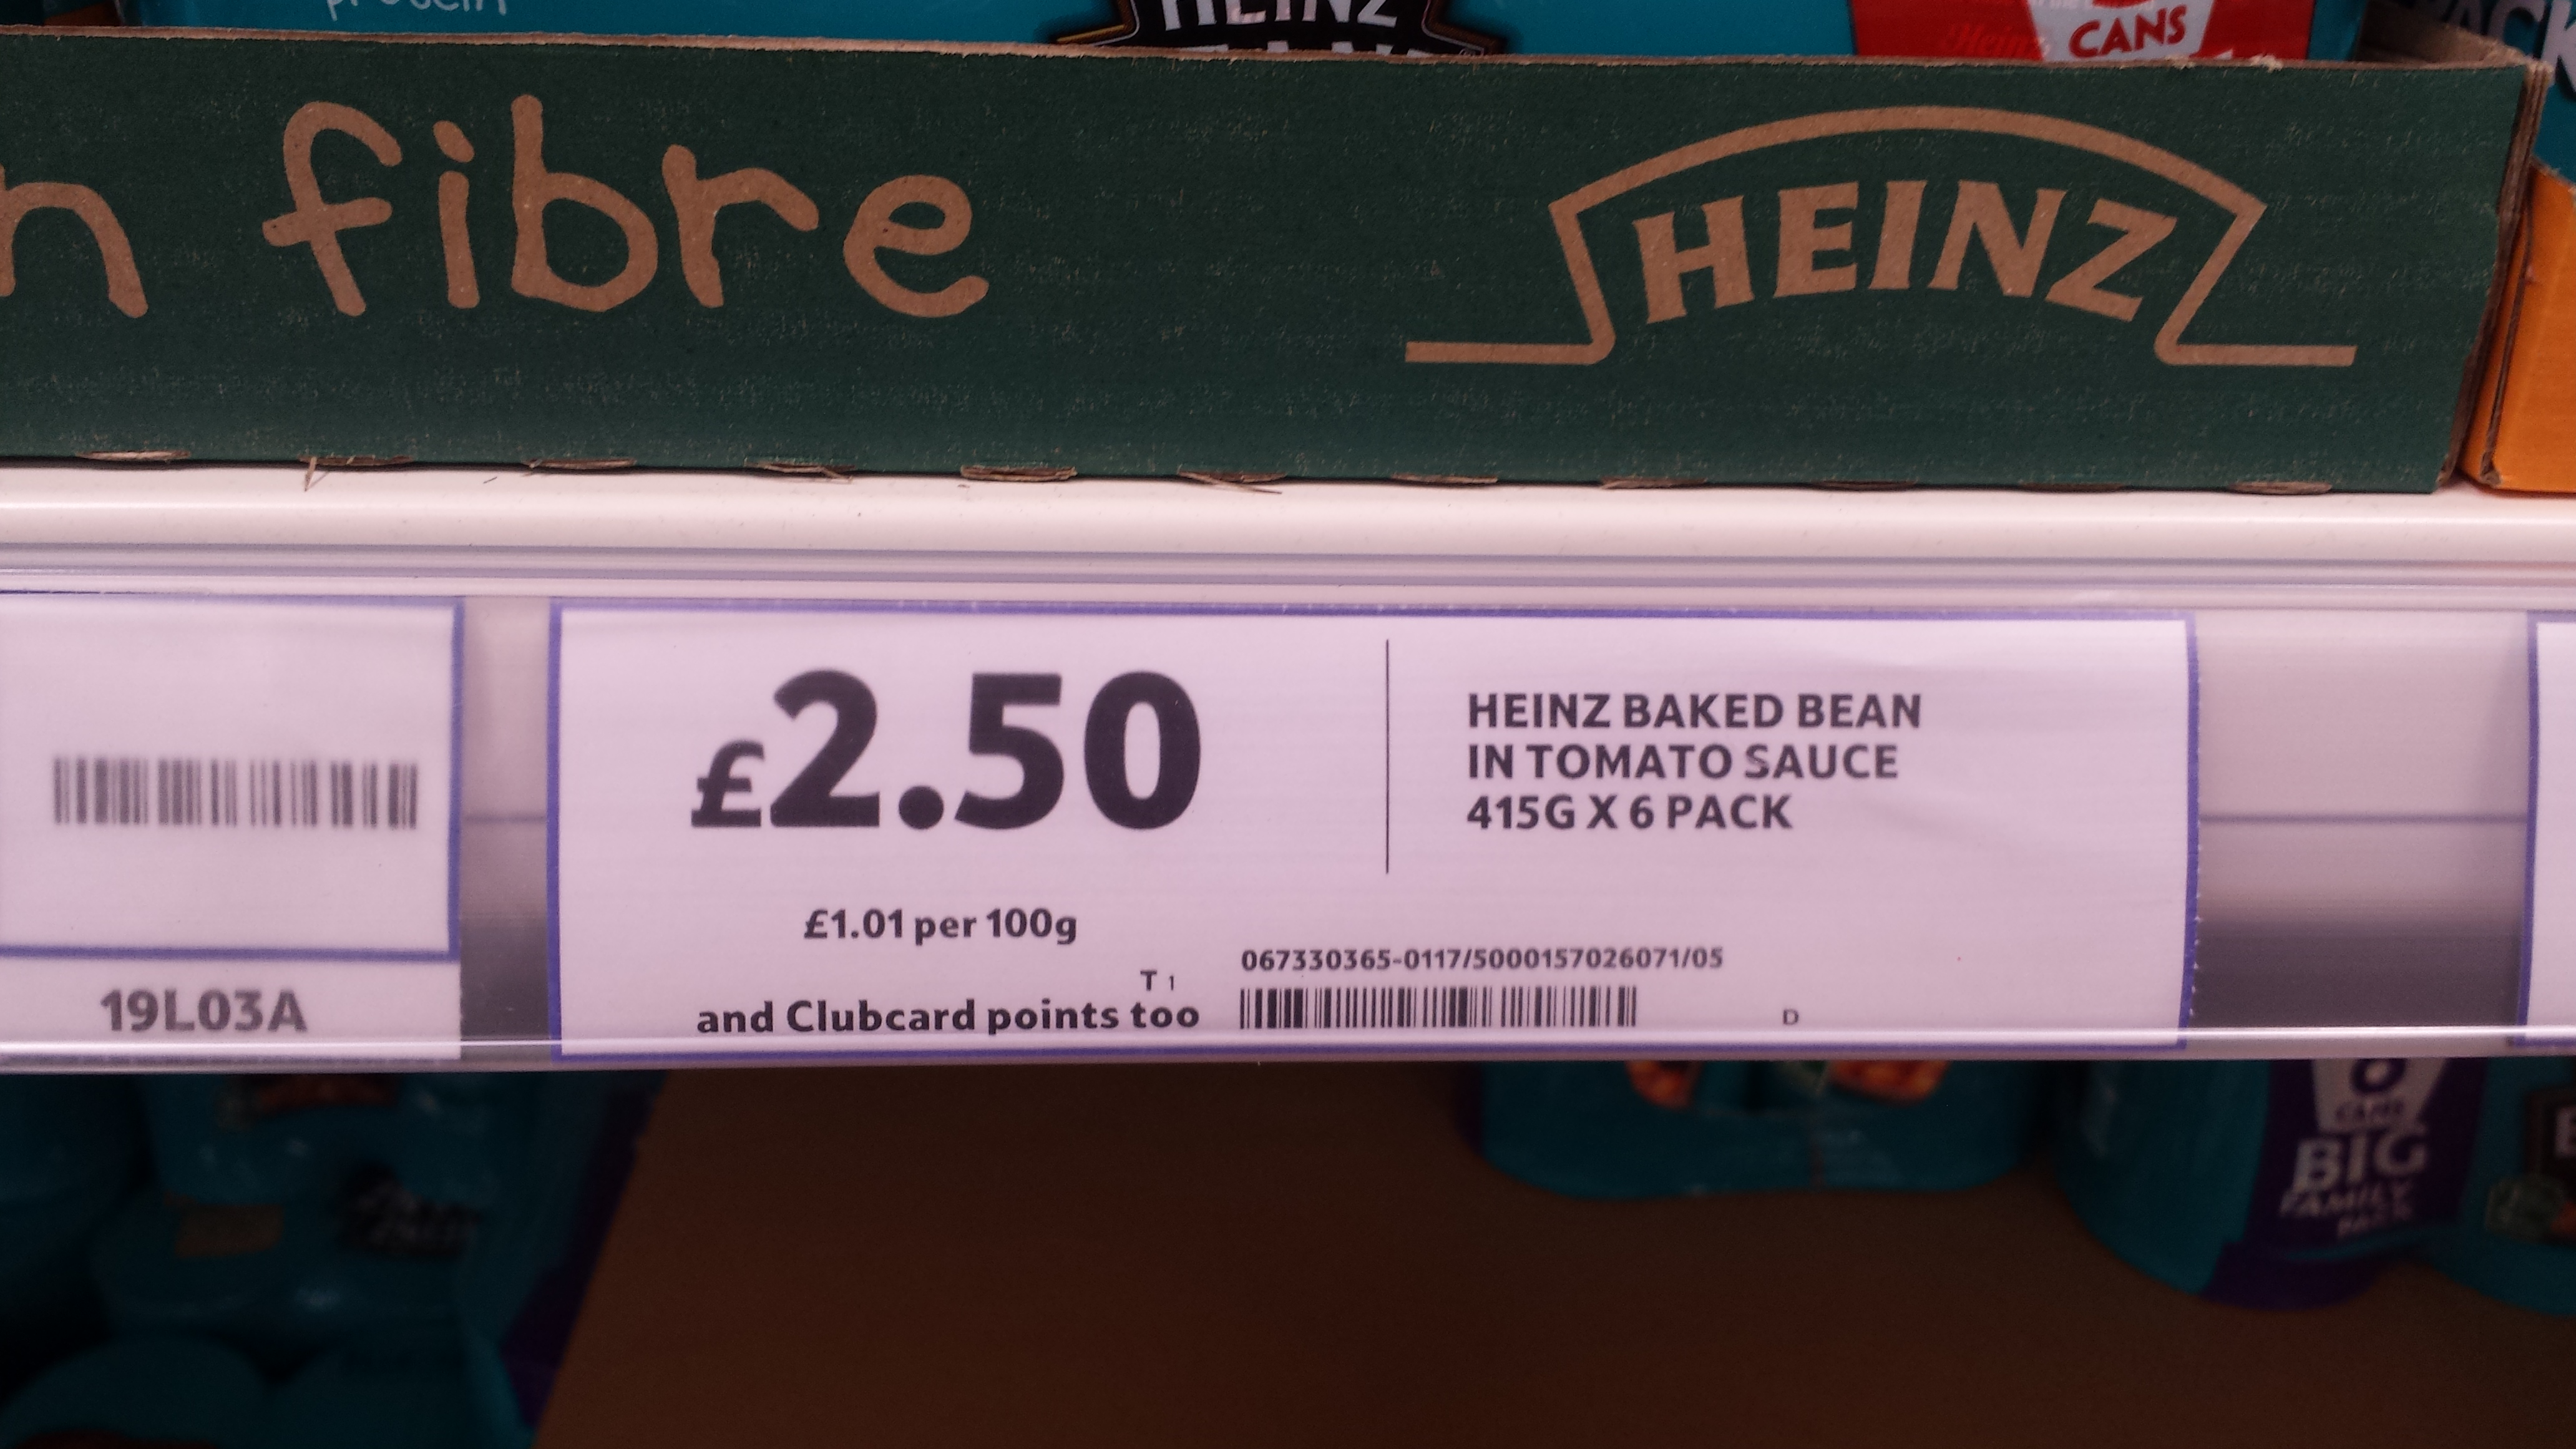 Heinz baked beans 6 pack at Tesco